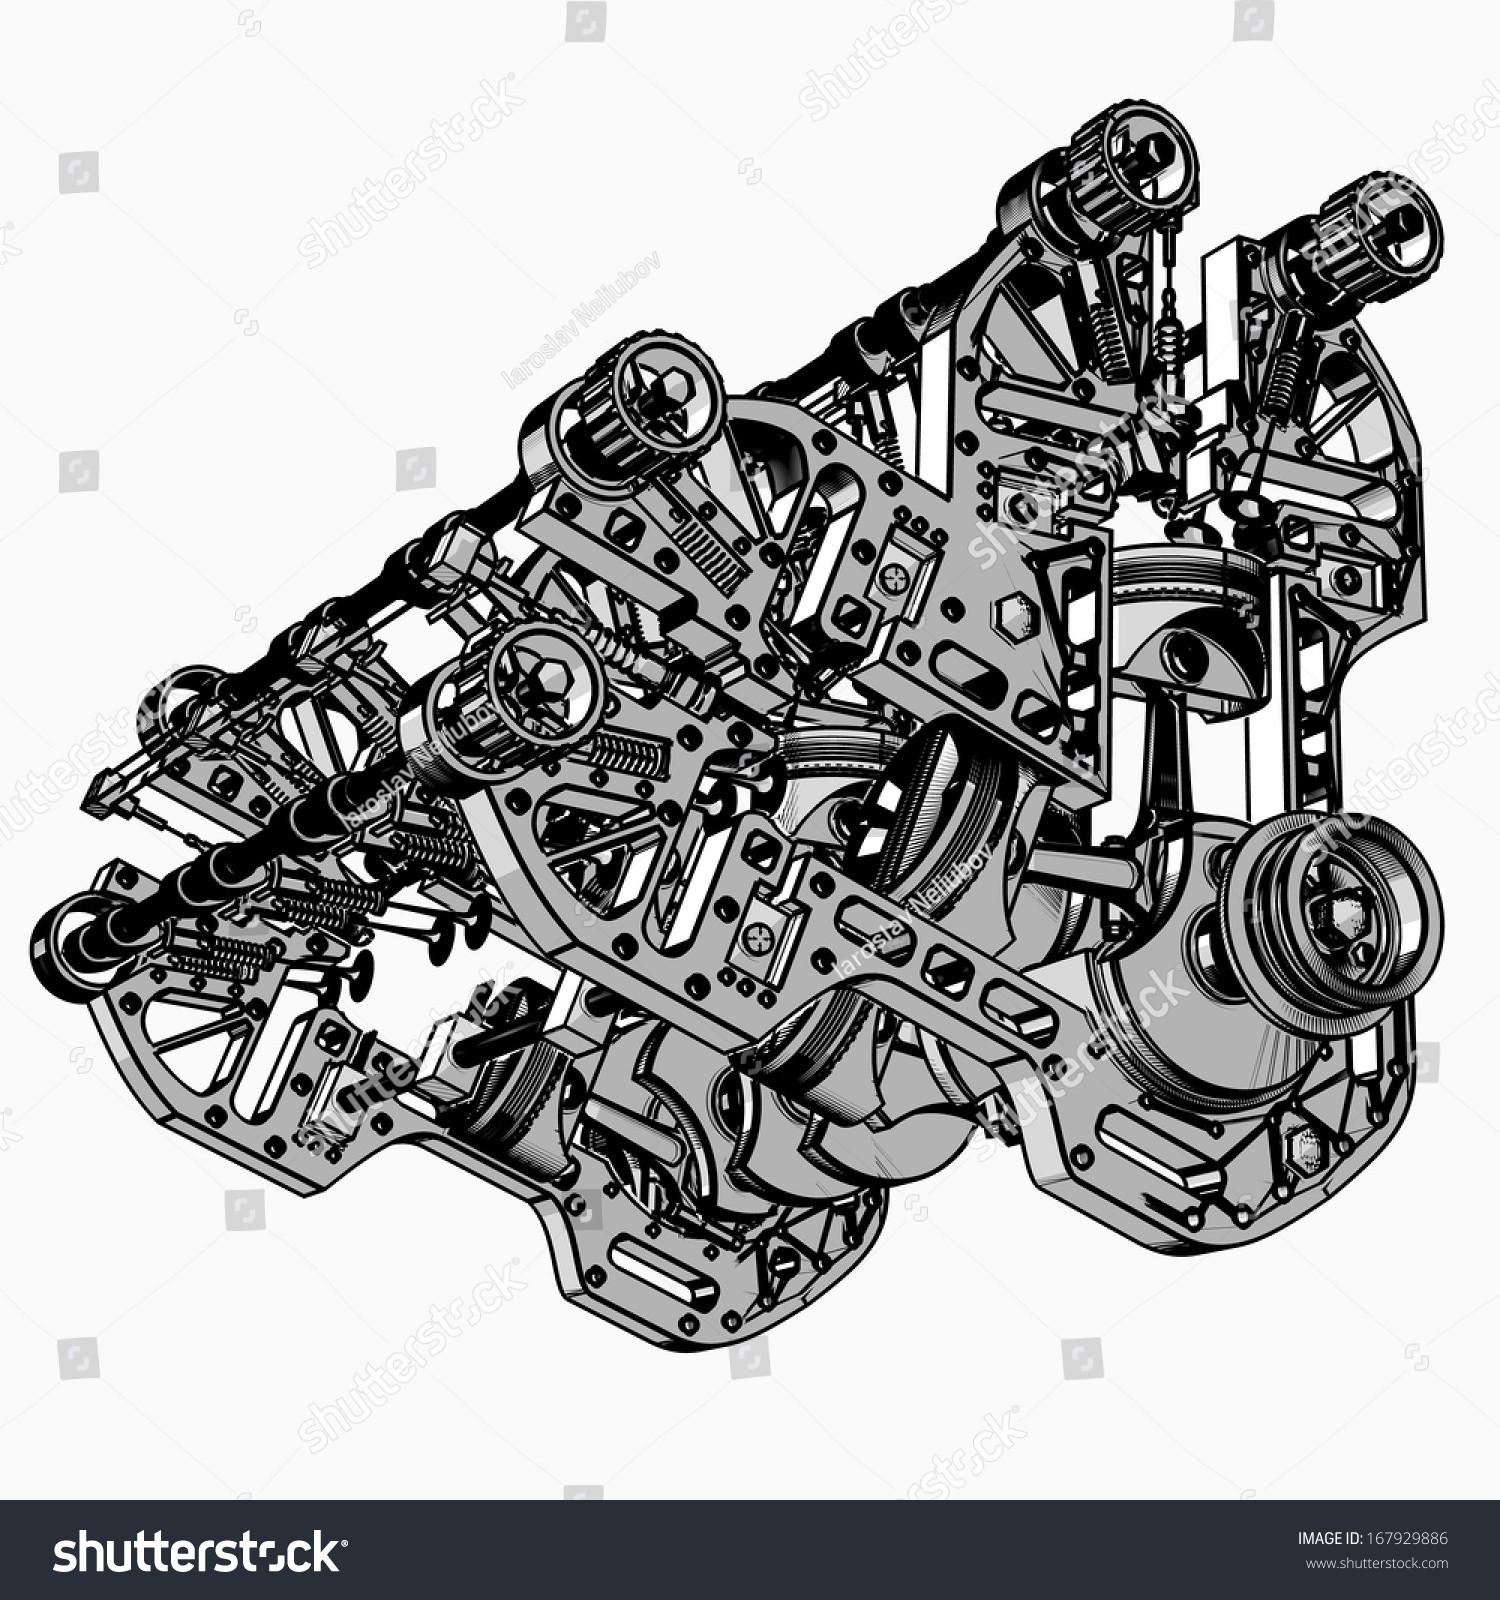 Animated V8 Engine Diagram V 8 Car Engine Black White Drawing Stock Boxer Engine  Animation V8 Engine Animation Diagram